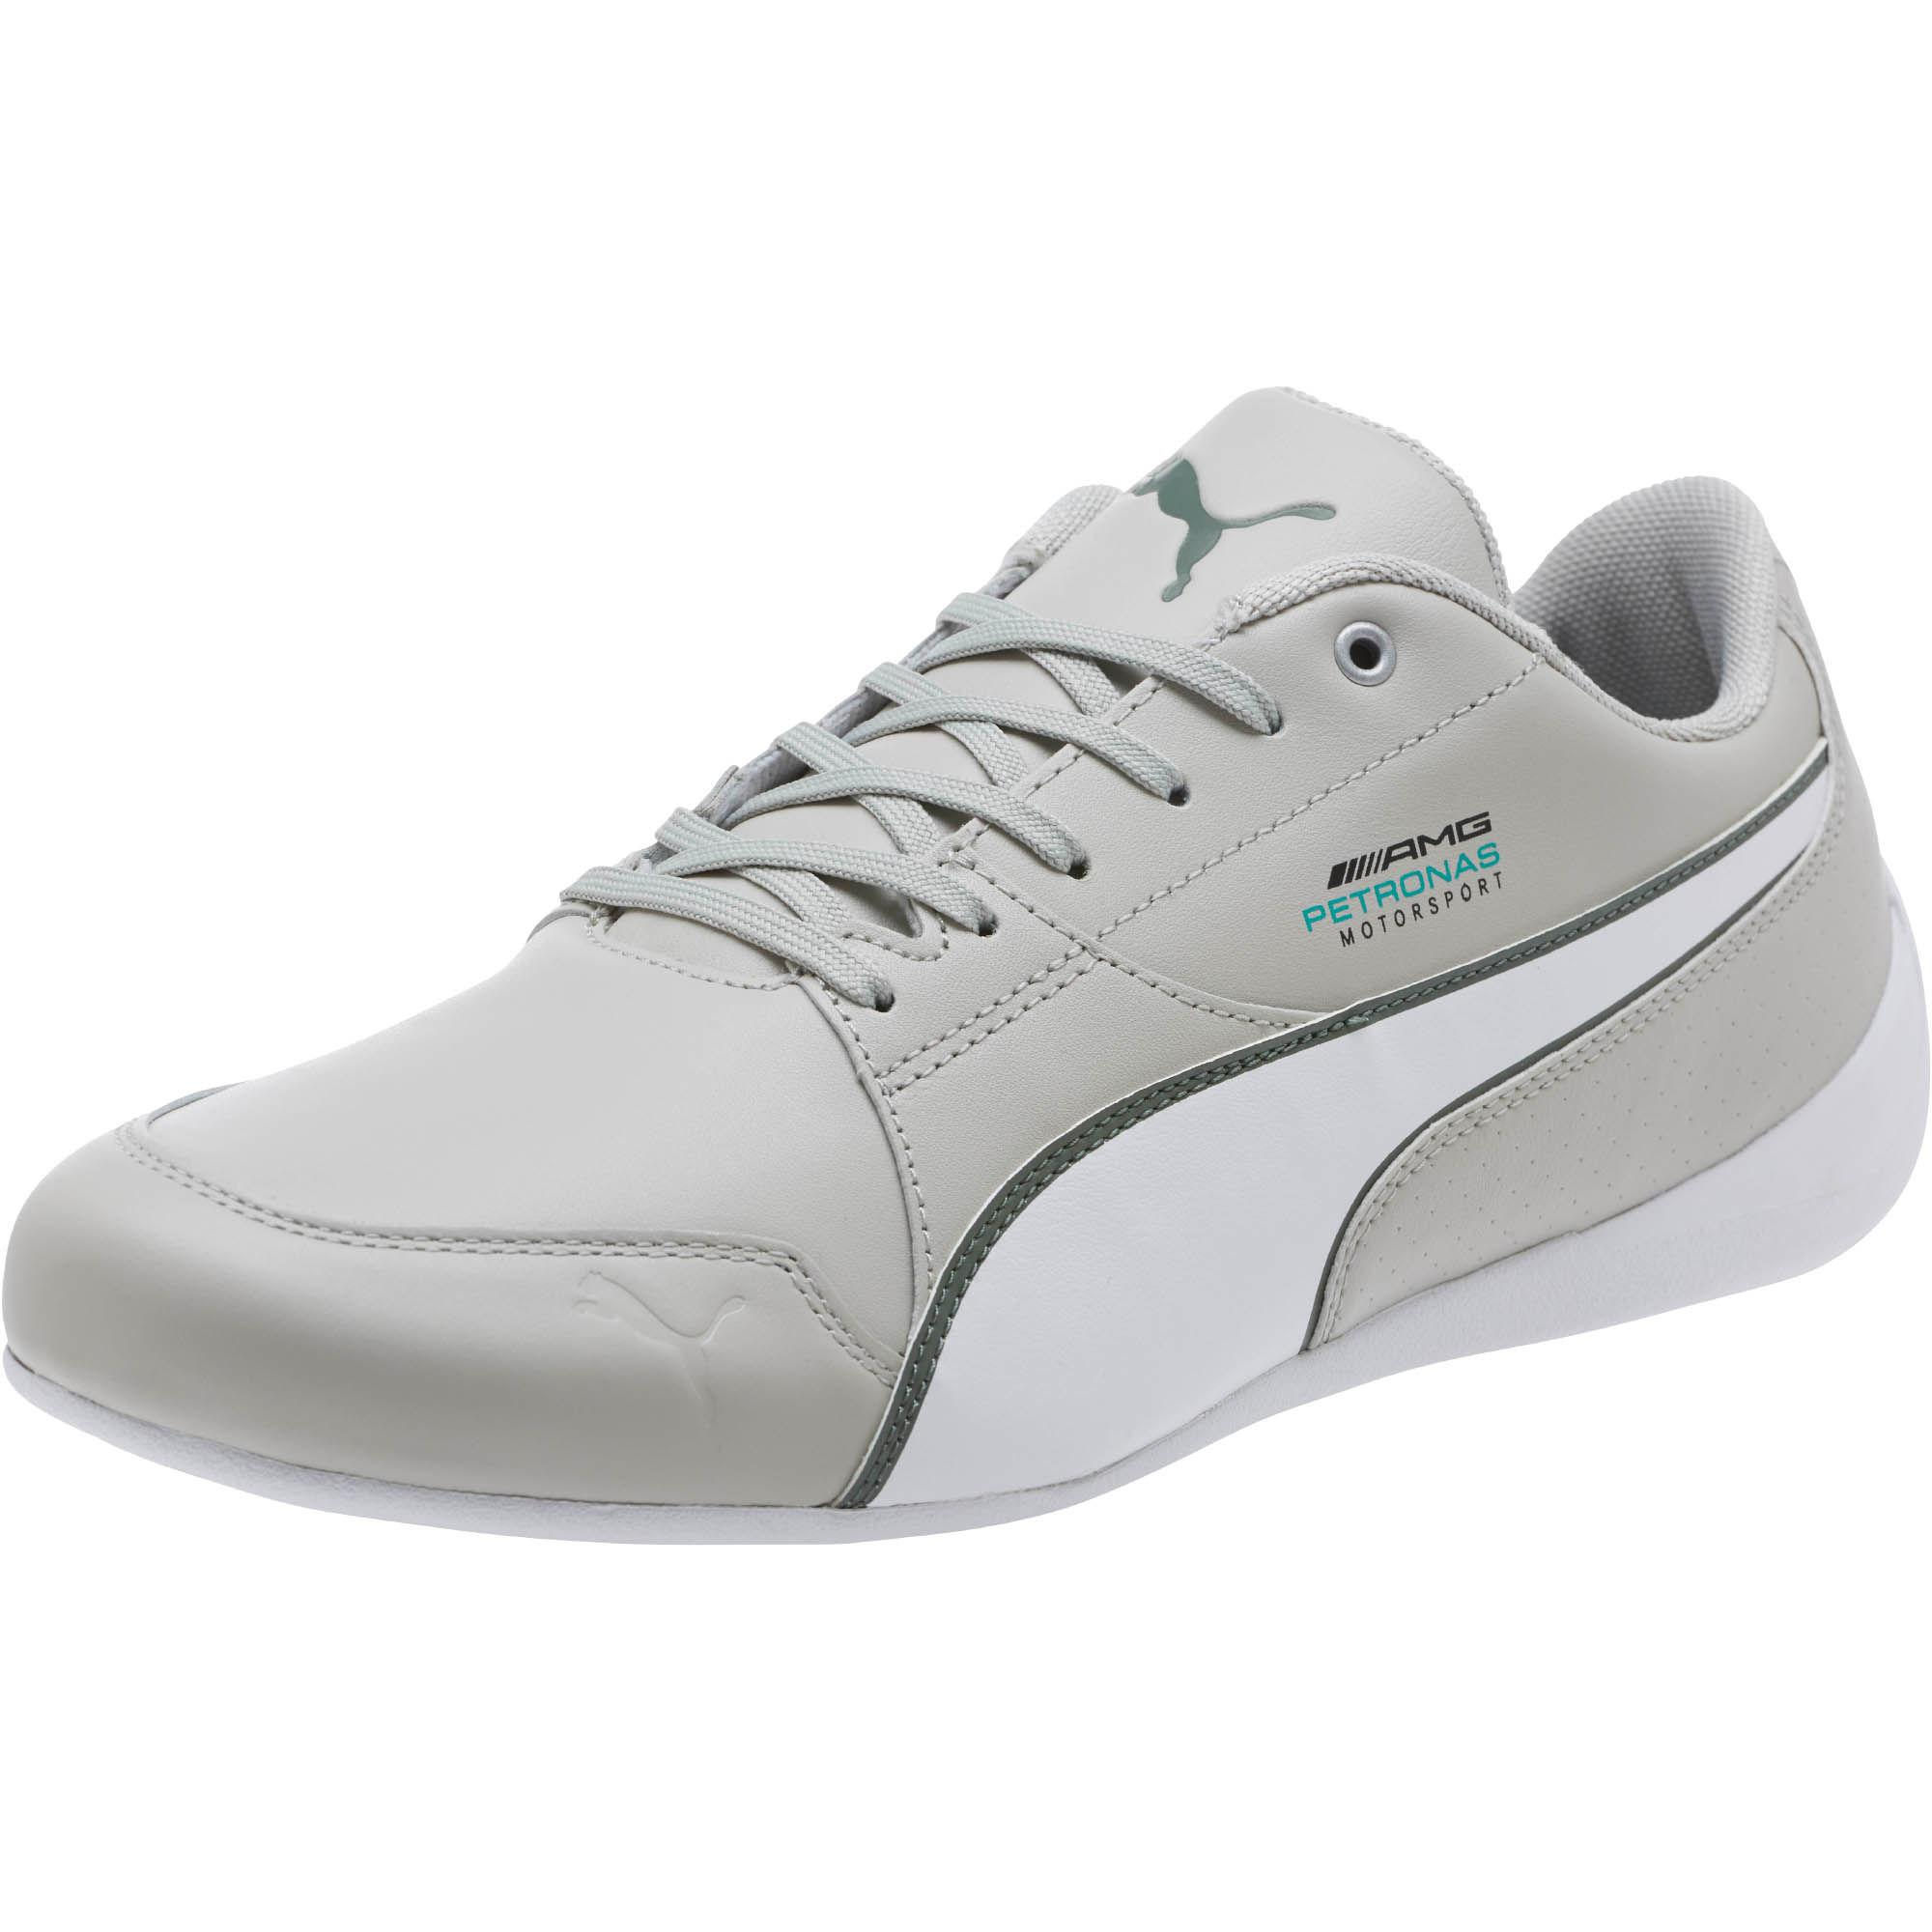 bde7cb7ca16 Lyst - PUMA Mercedes Amg Petronas Motorsport Drift Cat 7 Sneakers in ...